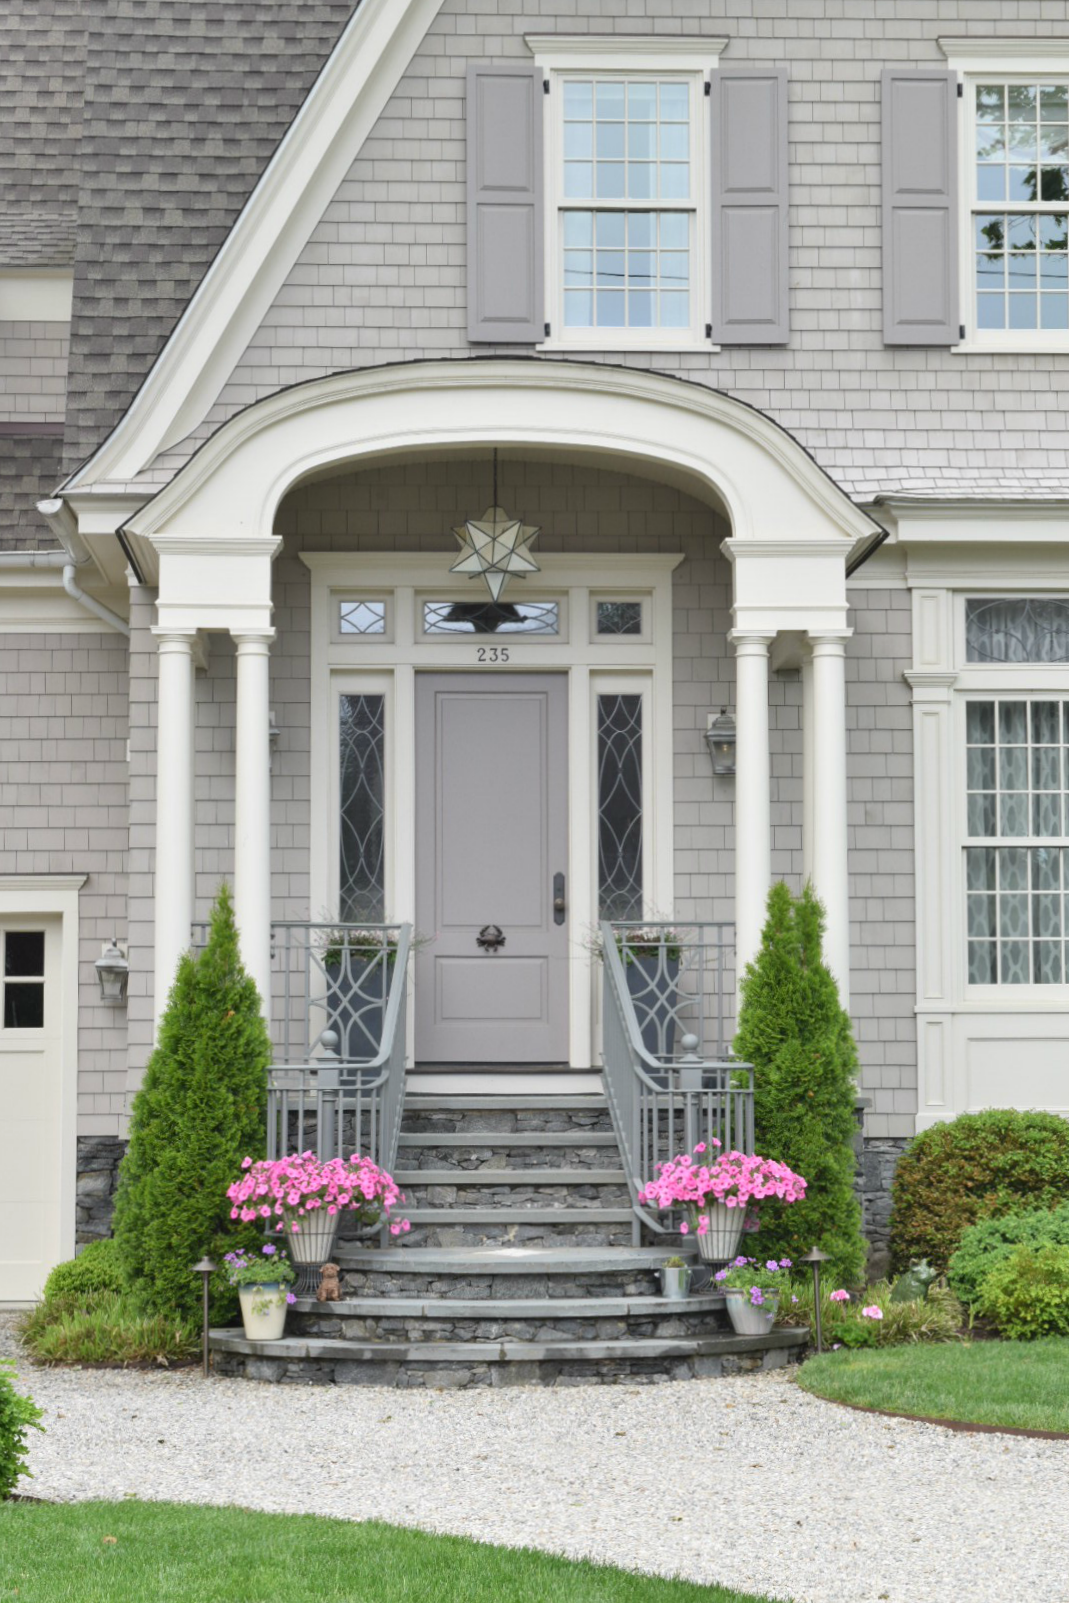 New england homes exterior paint color ideas nesting with grace - Paint colors for homes exterior style ...